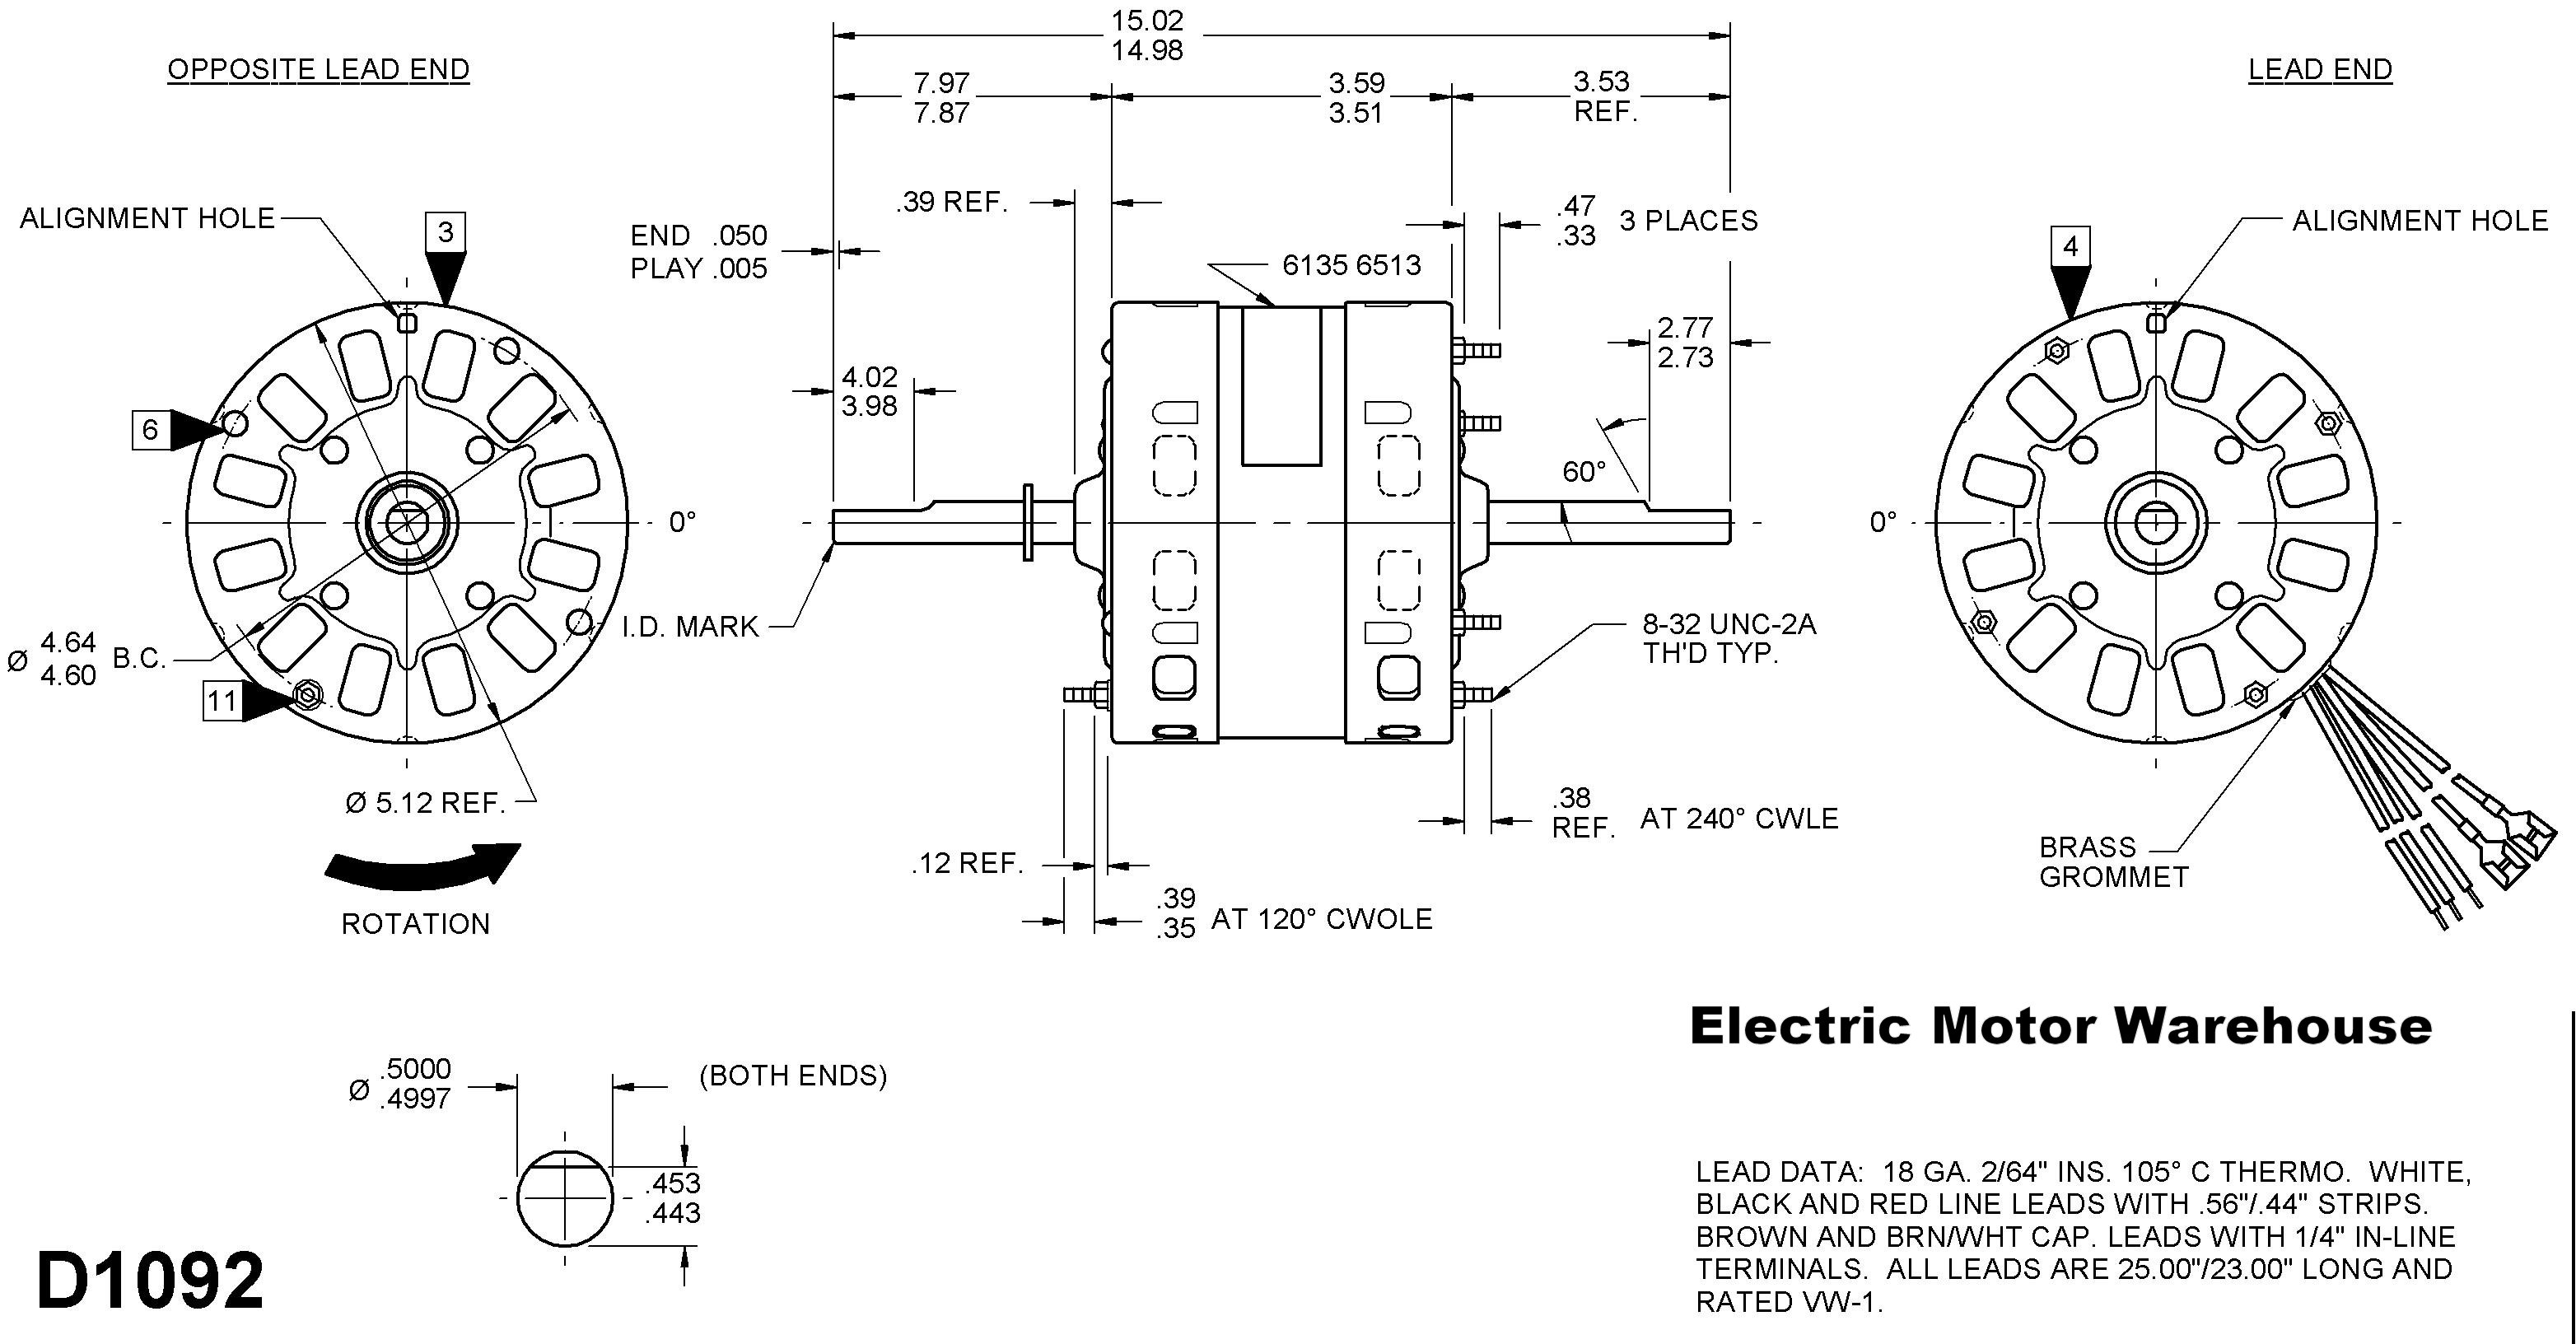 ceiling fan wiring diagram reverse switch split ac 1/3 hp 115v 1625 rpm 2-speed rv air conditioner motor (7184-0156, 7184-0432, 1468-3069) fasco d1092